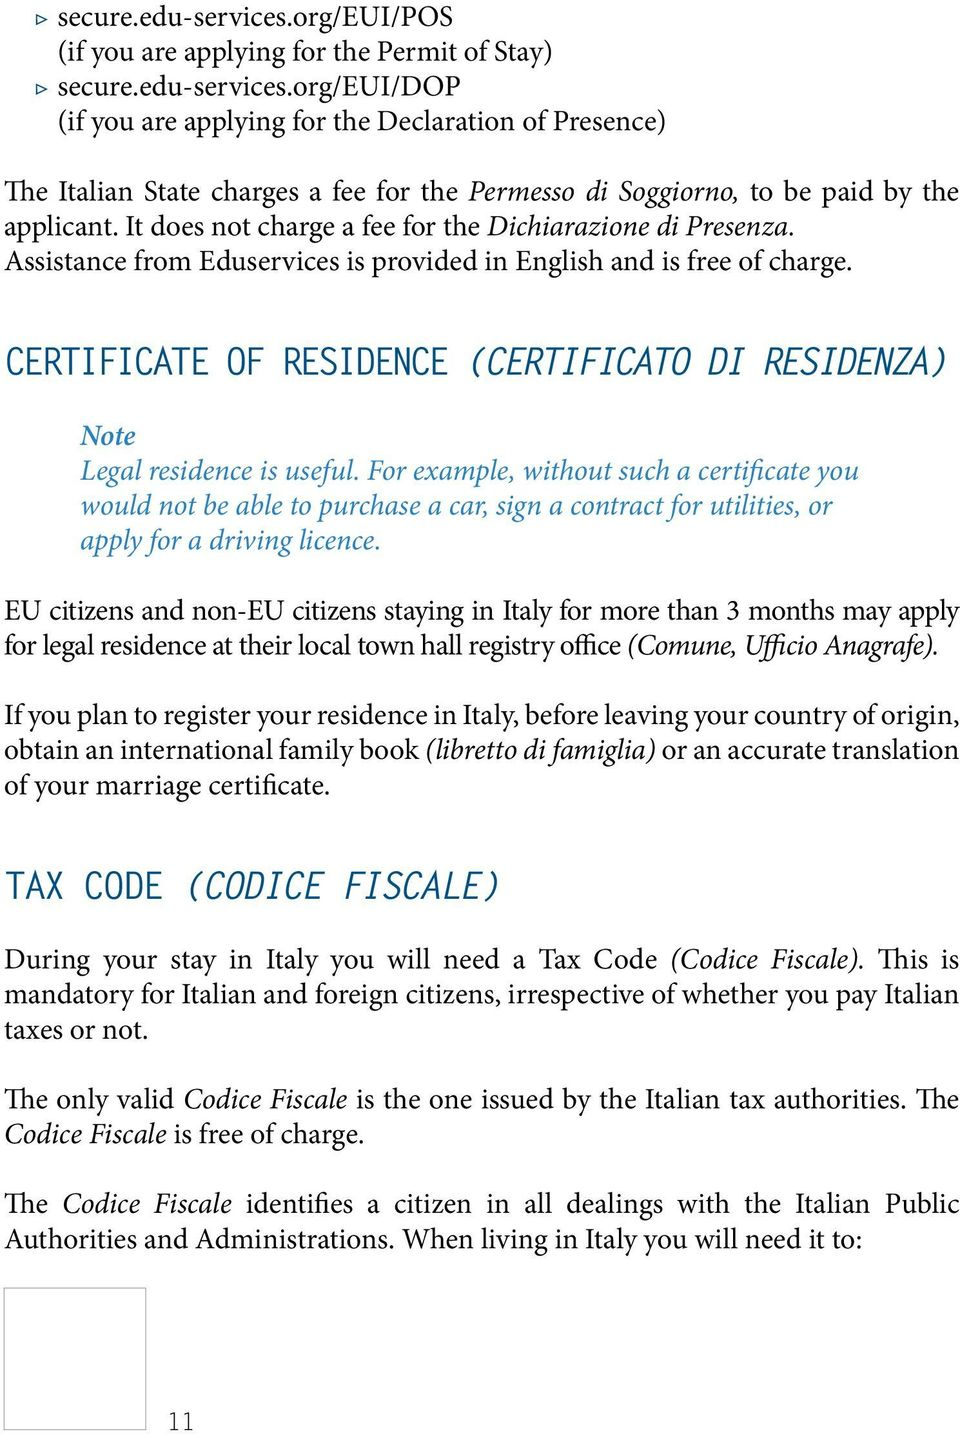 Certificate of ResidencE (Certificato di Residenza) Note Legal residence is useful.